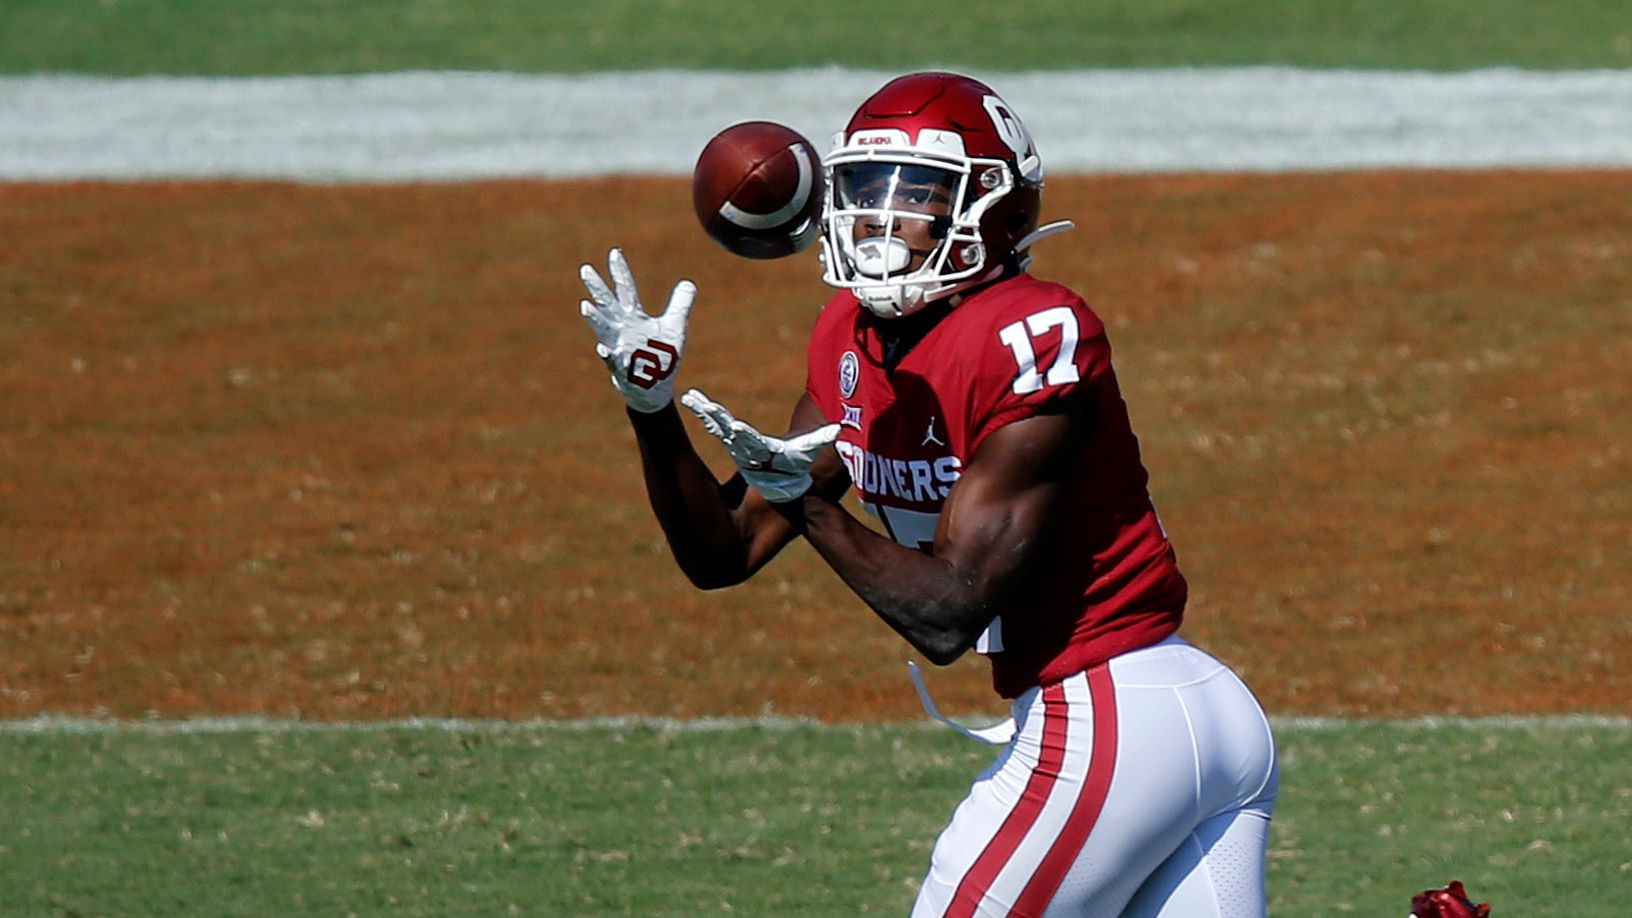 Oklahoma Sooners wide receiver Marvin Mims (17) pulls in a first quarter touchdown pass against the Texas Longhorns in the Red River Rivalry at the Cotton Bowl in Dallas, Saturday, October 10, 2020. Oklahoma won in quadruple overtime, 53-45.